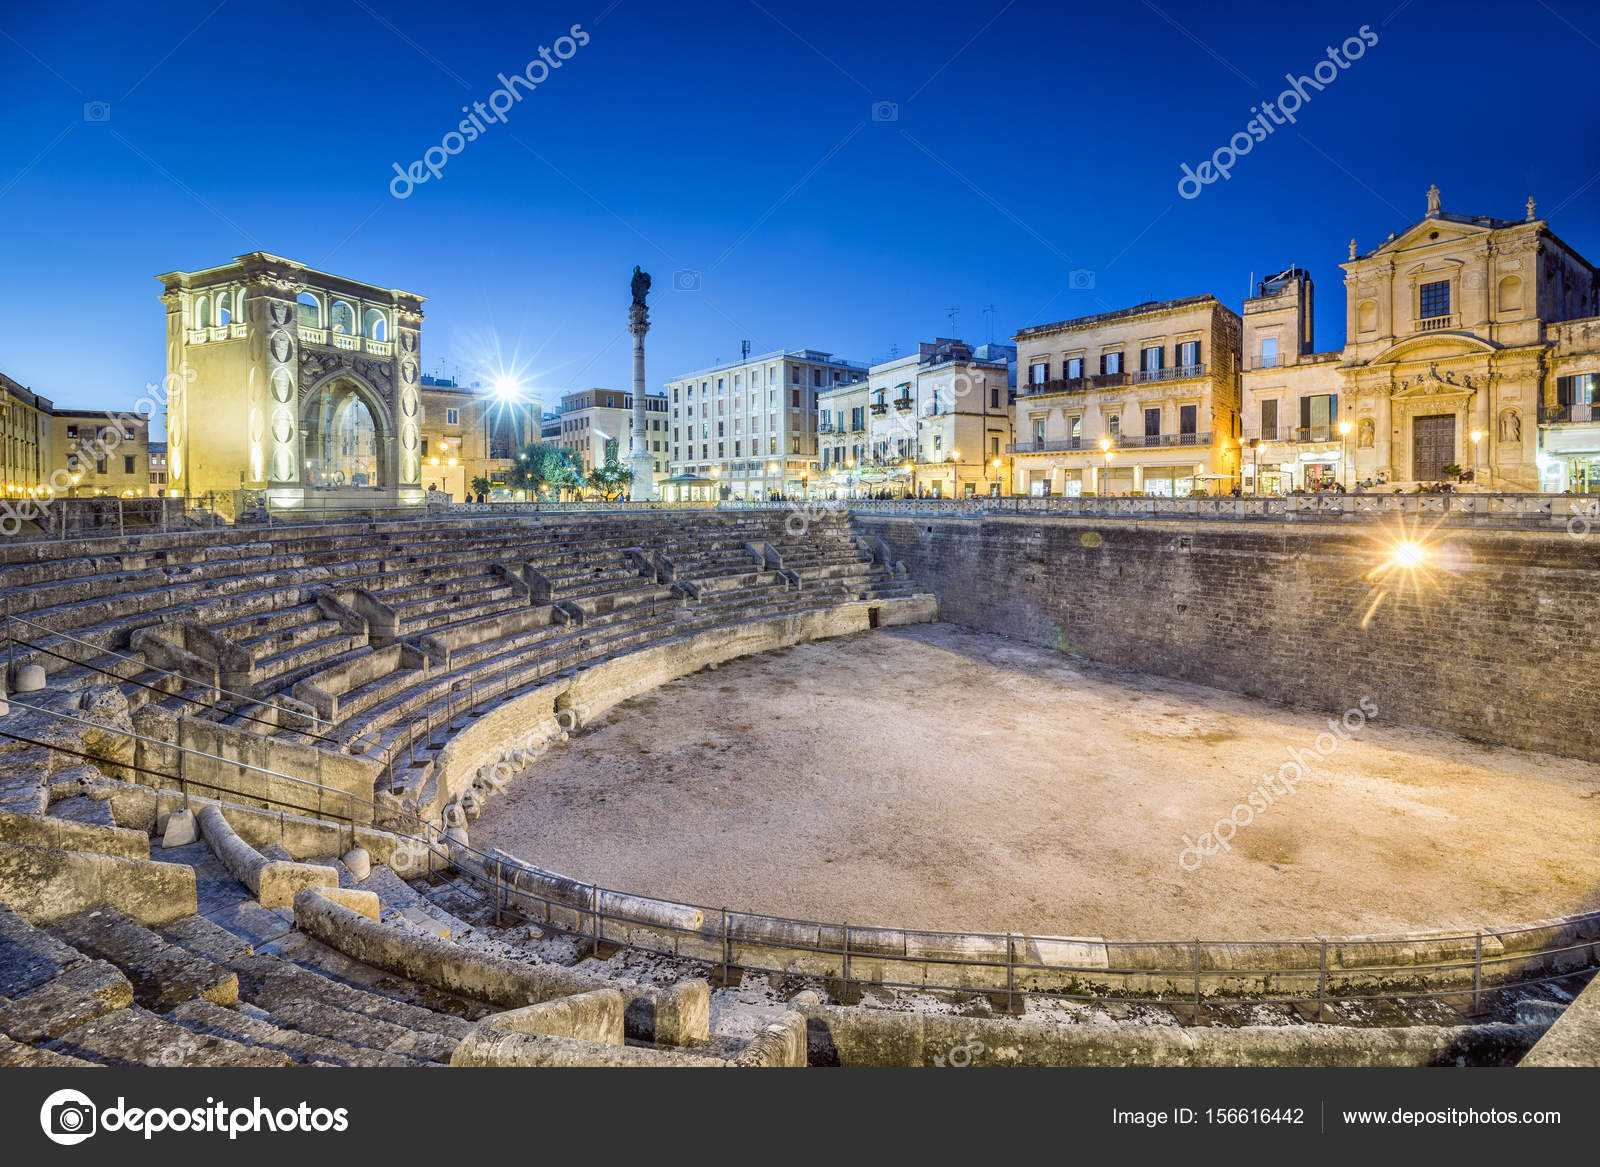 Wat Is Een Amfitheater Oude Amfitheater In Lecce Italië Stockfoto Eunikas 156616442